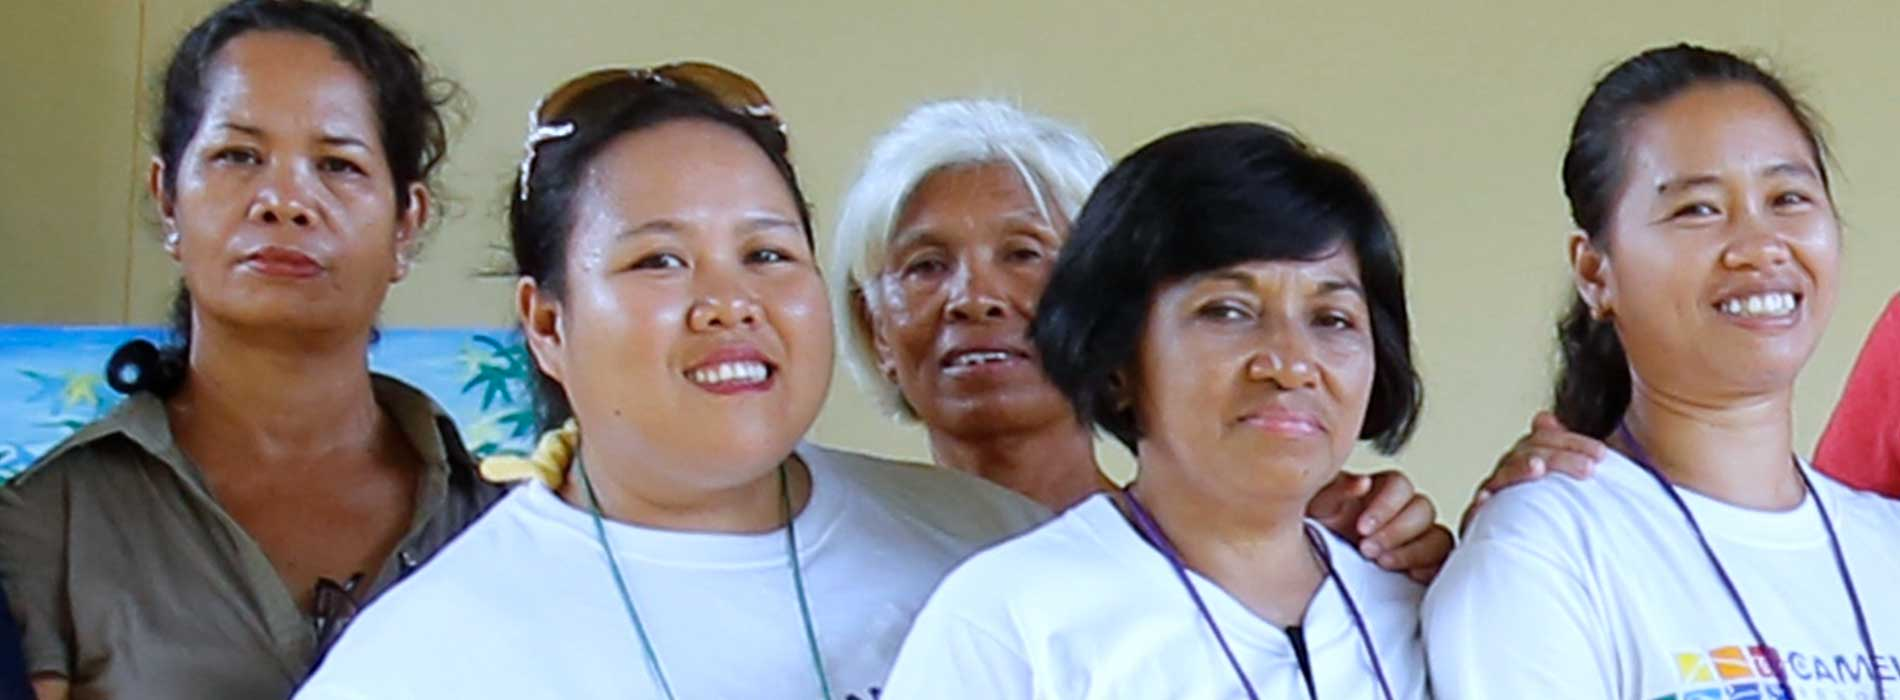 Testimony of Melanie, social worker at the center in the Philippines